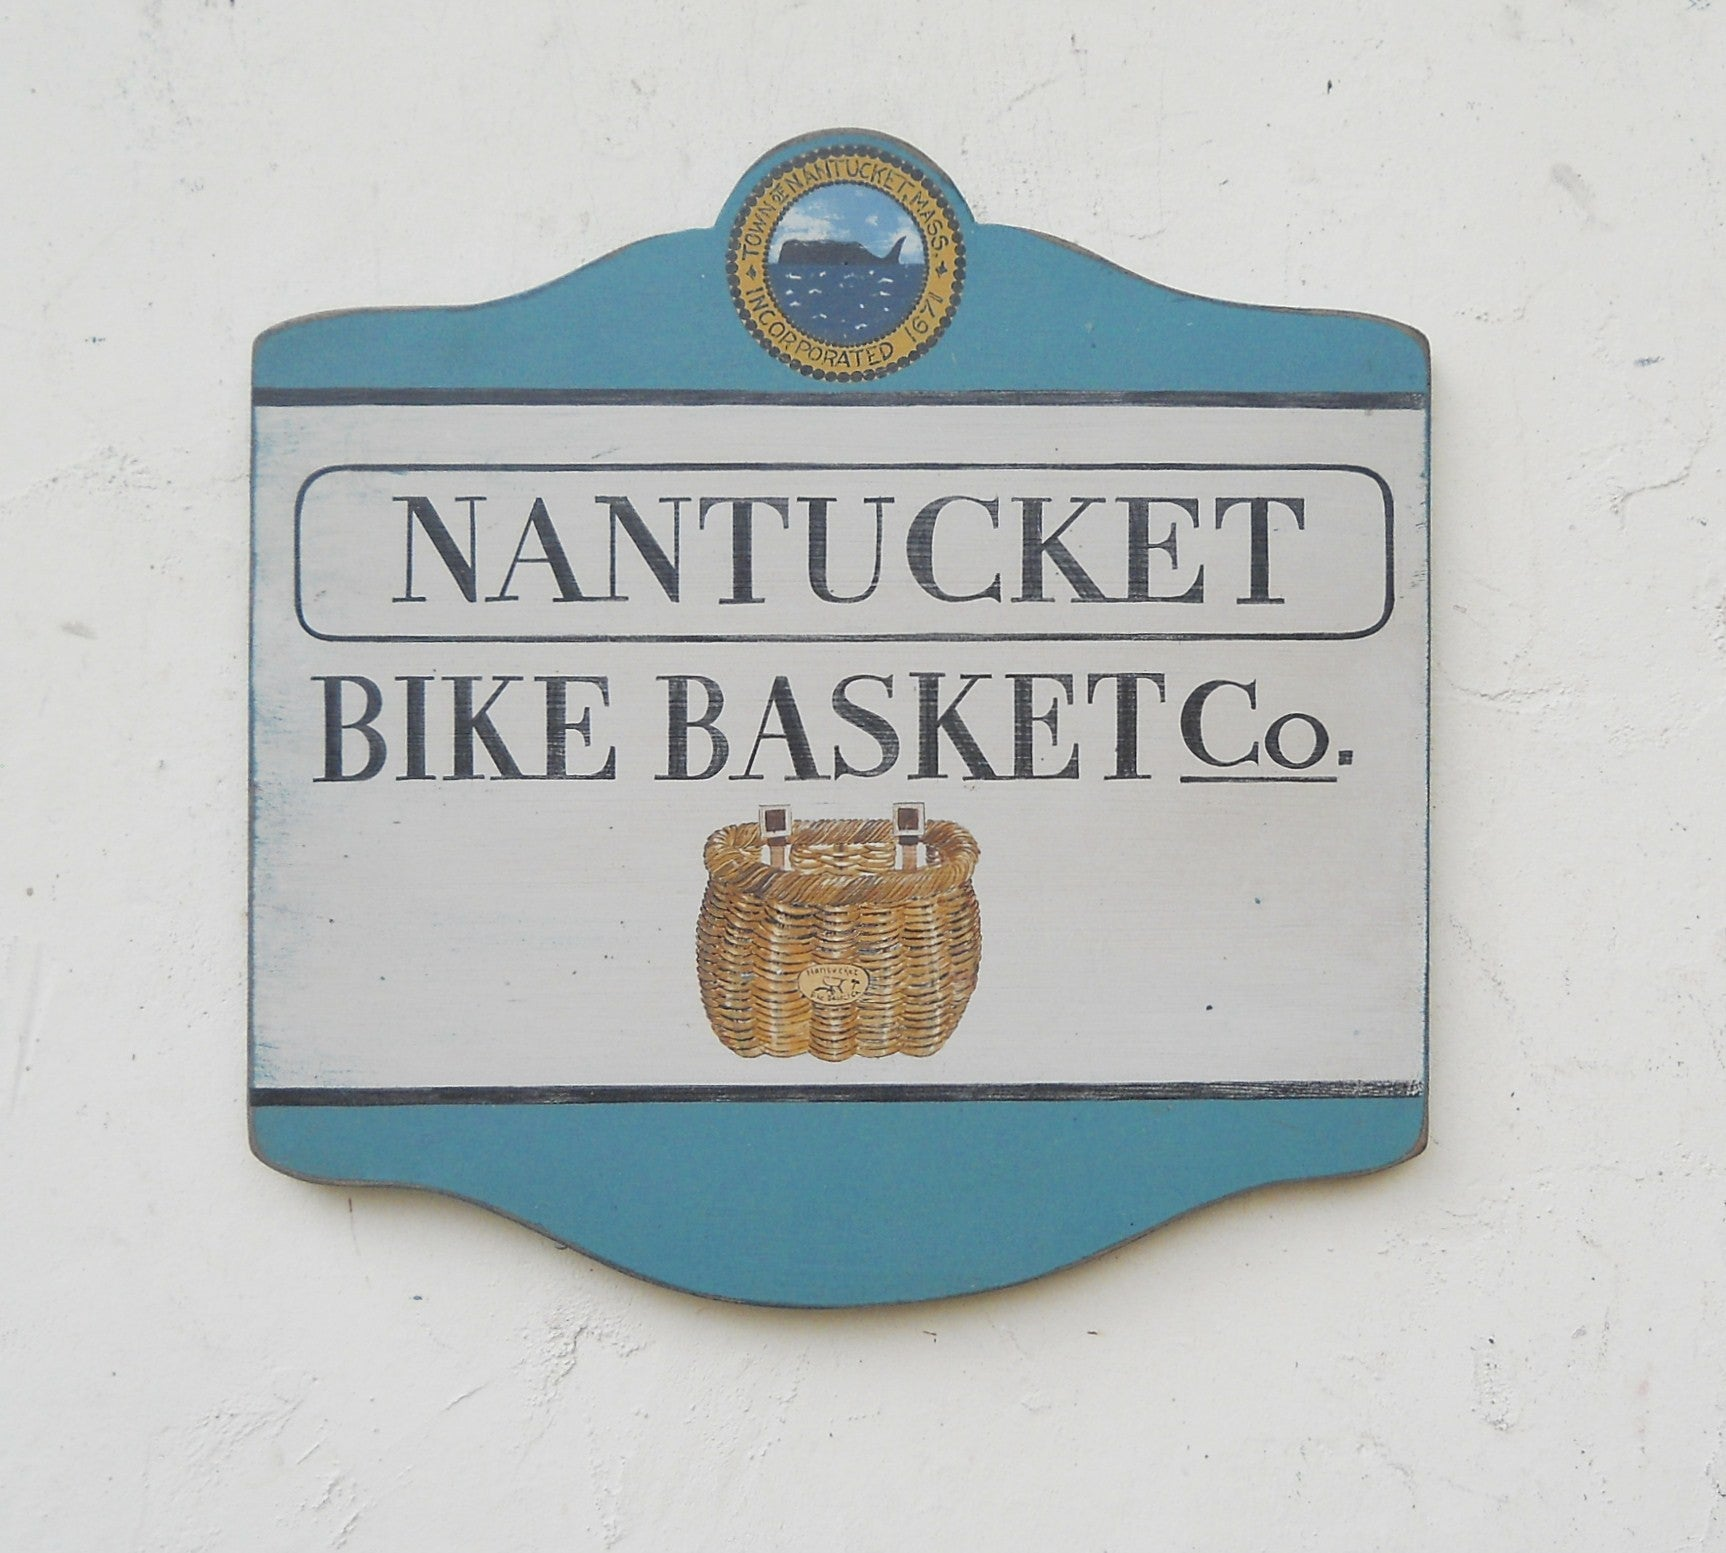 Nantucket Bike